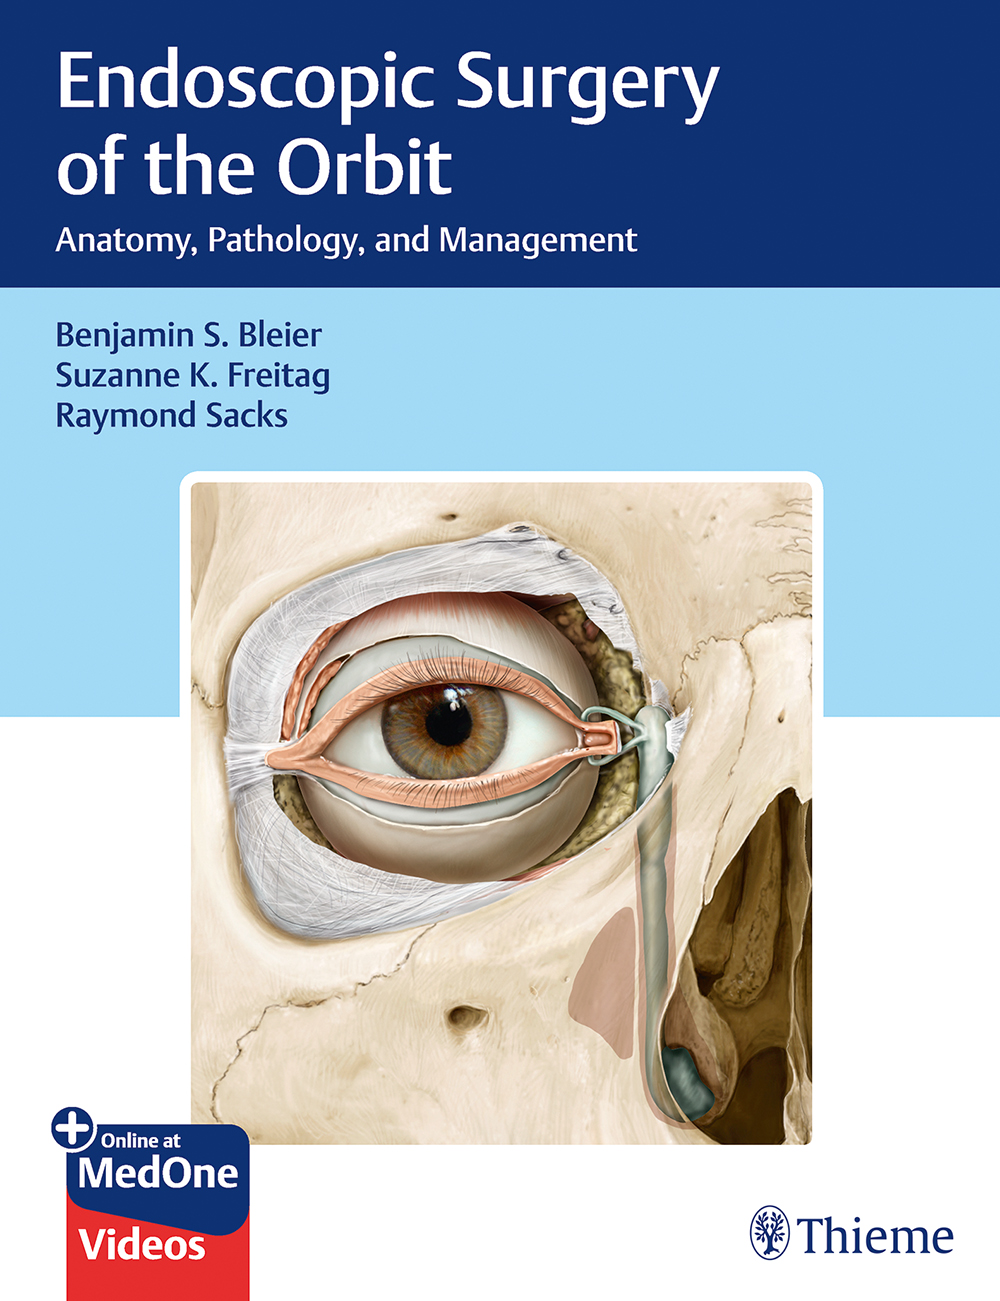 Endoscopic Surgery of the Orbit: Anatomy, Pathology, and Management